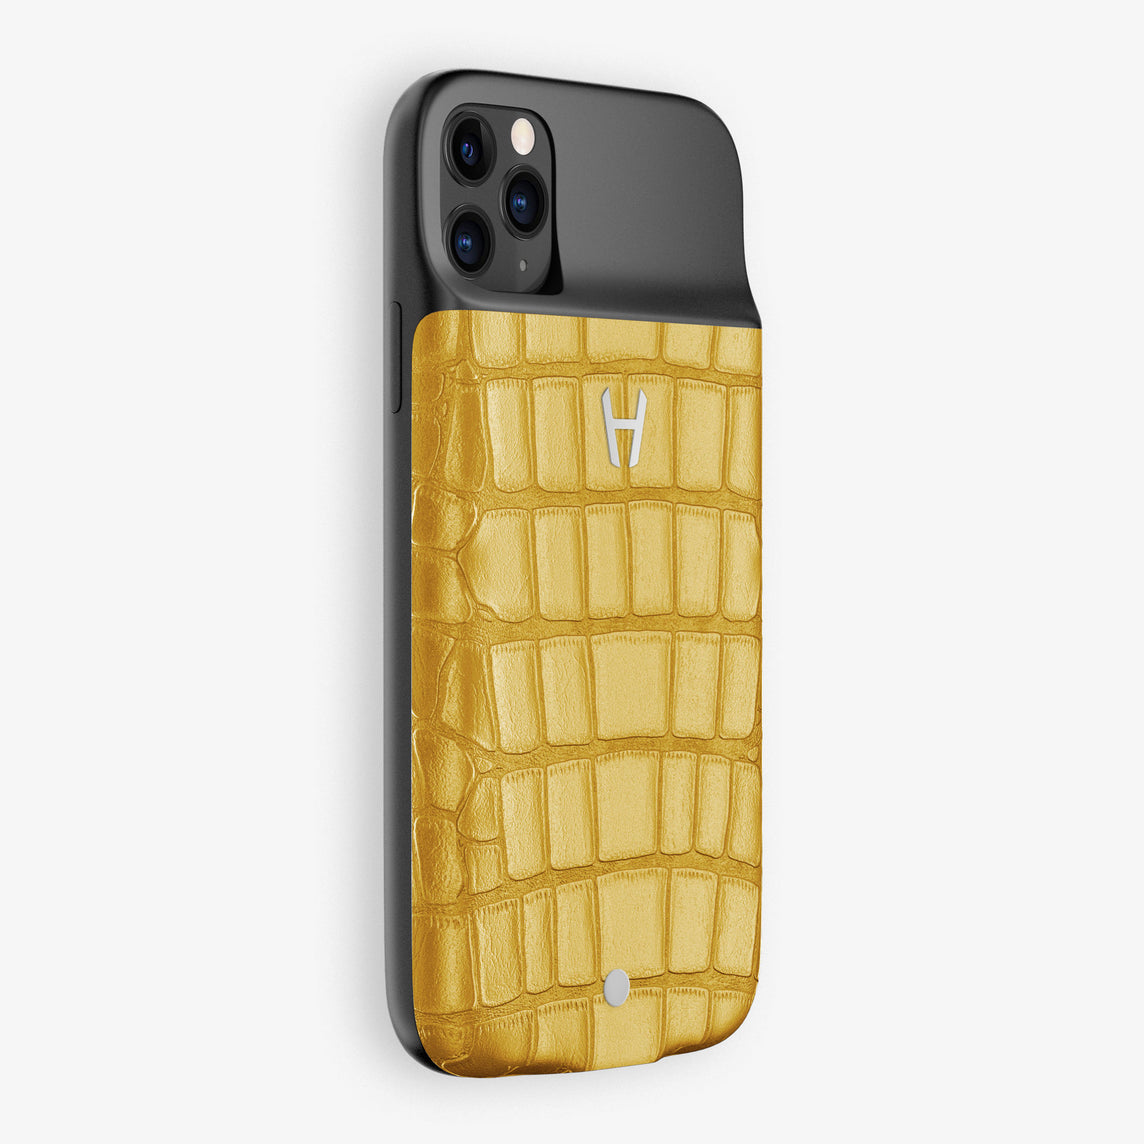 Alligator Battery Case iPhone 11 Pro | (VE-Y01) - Yellow Aventador - Jaune Aventador - YE - Stainless Steel